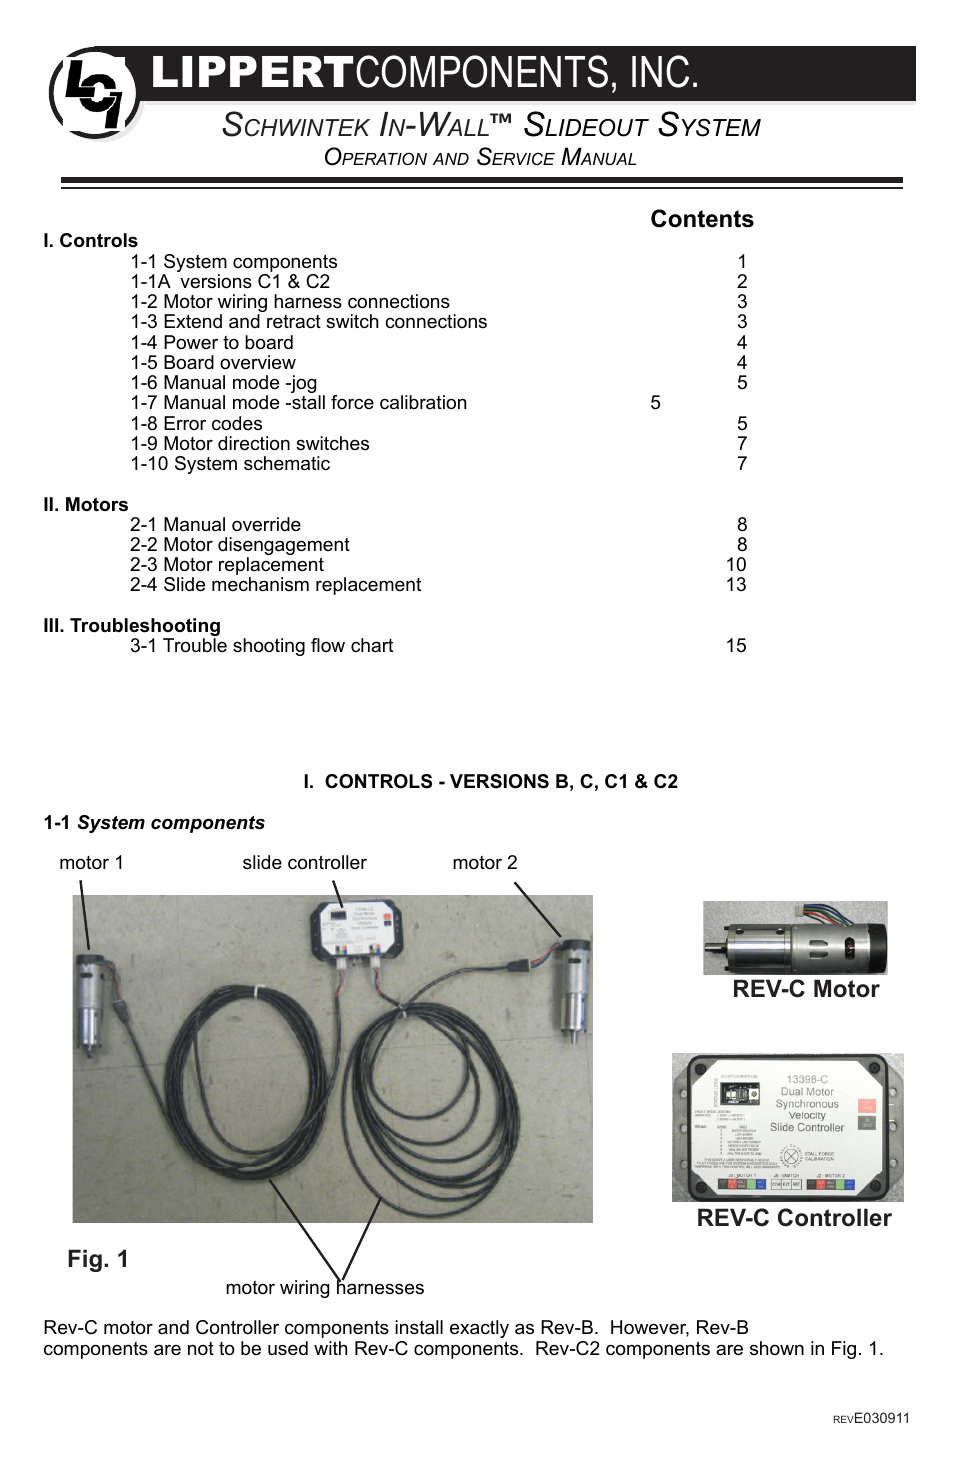 medium resolution of  lippert components in wall slide out system user manual 16 pages on slide out